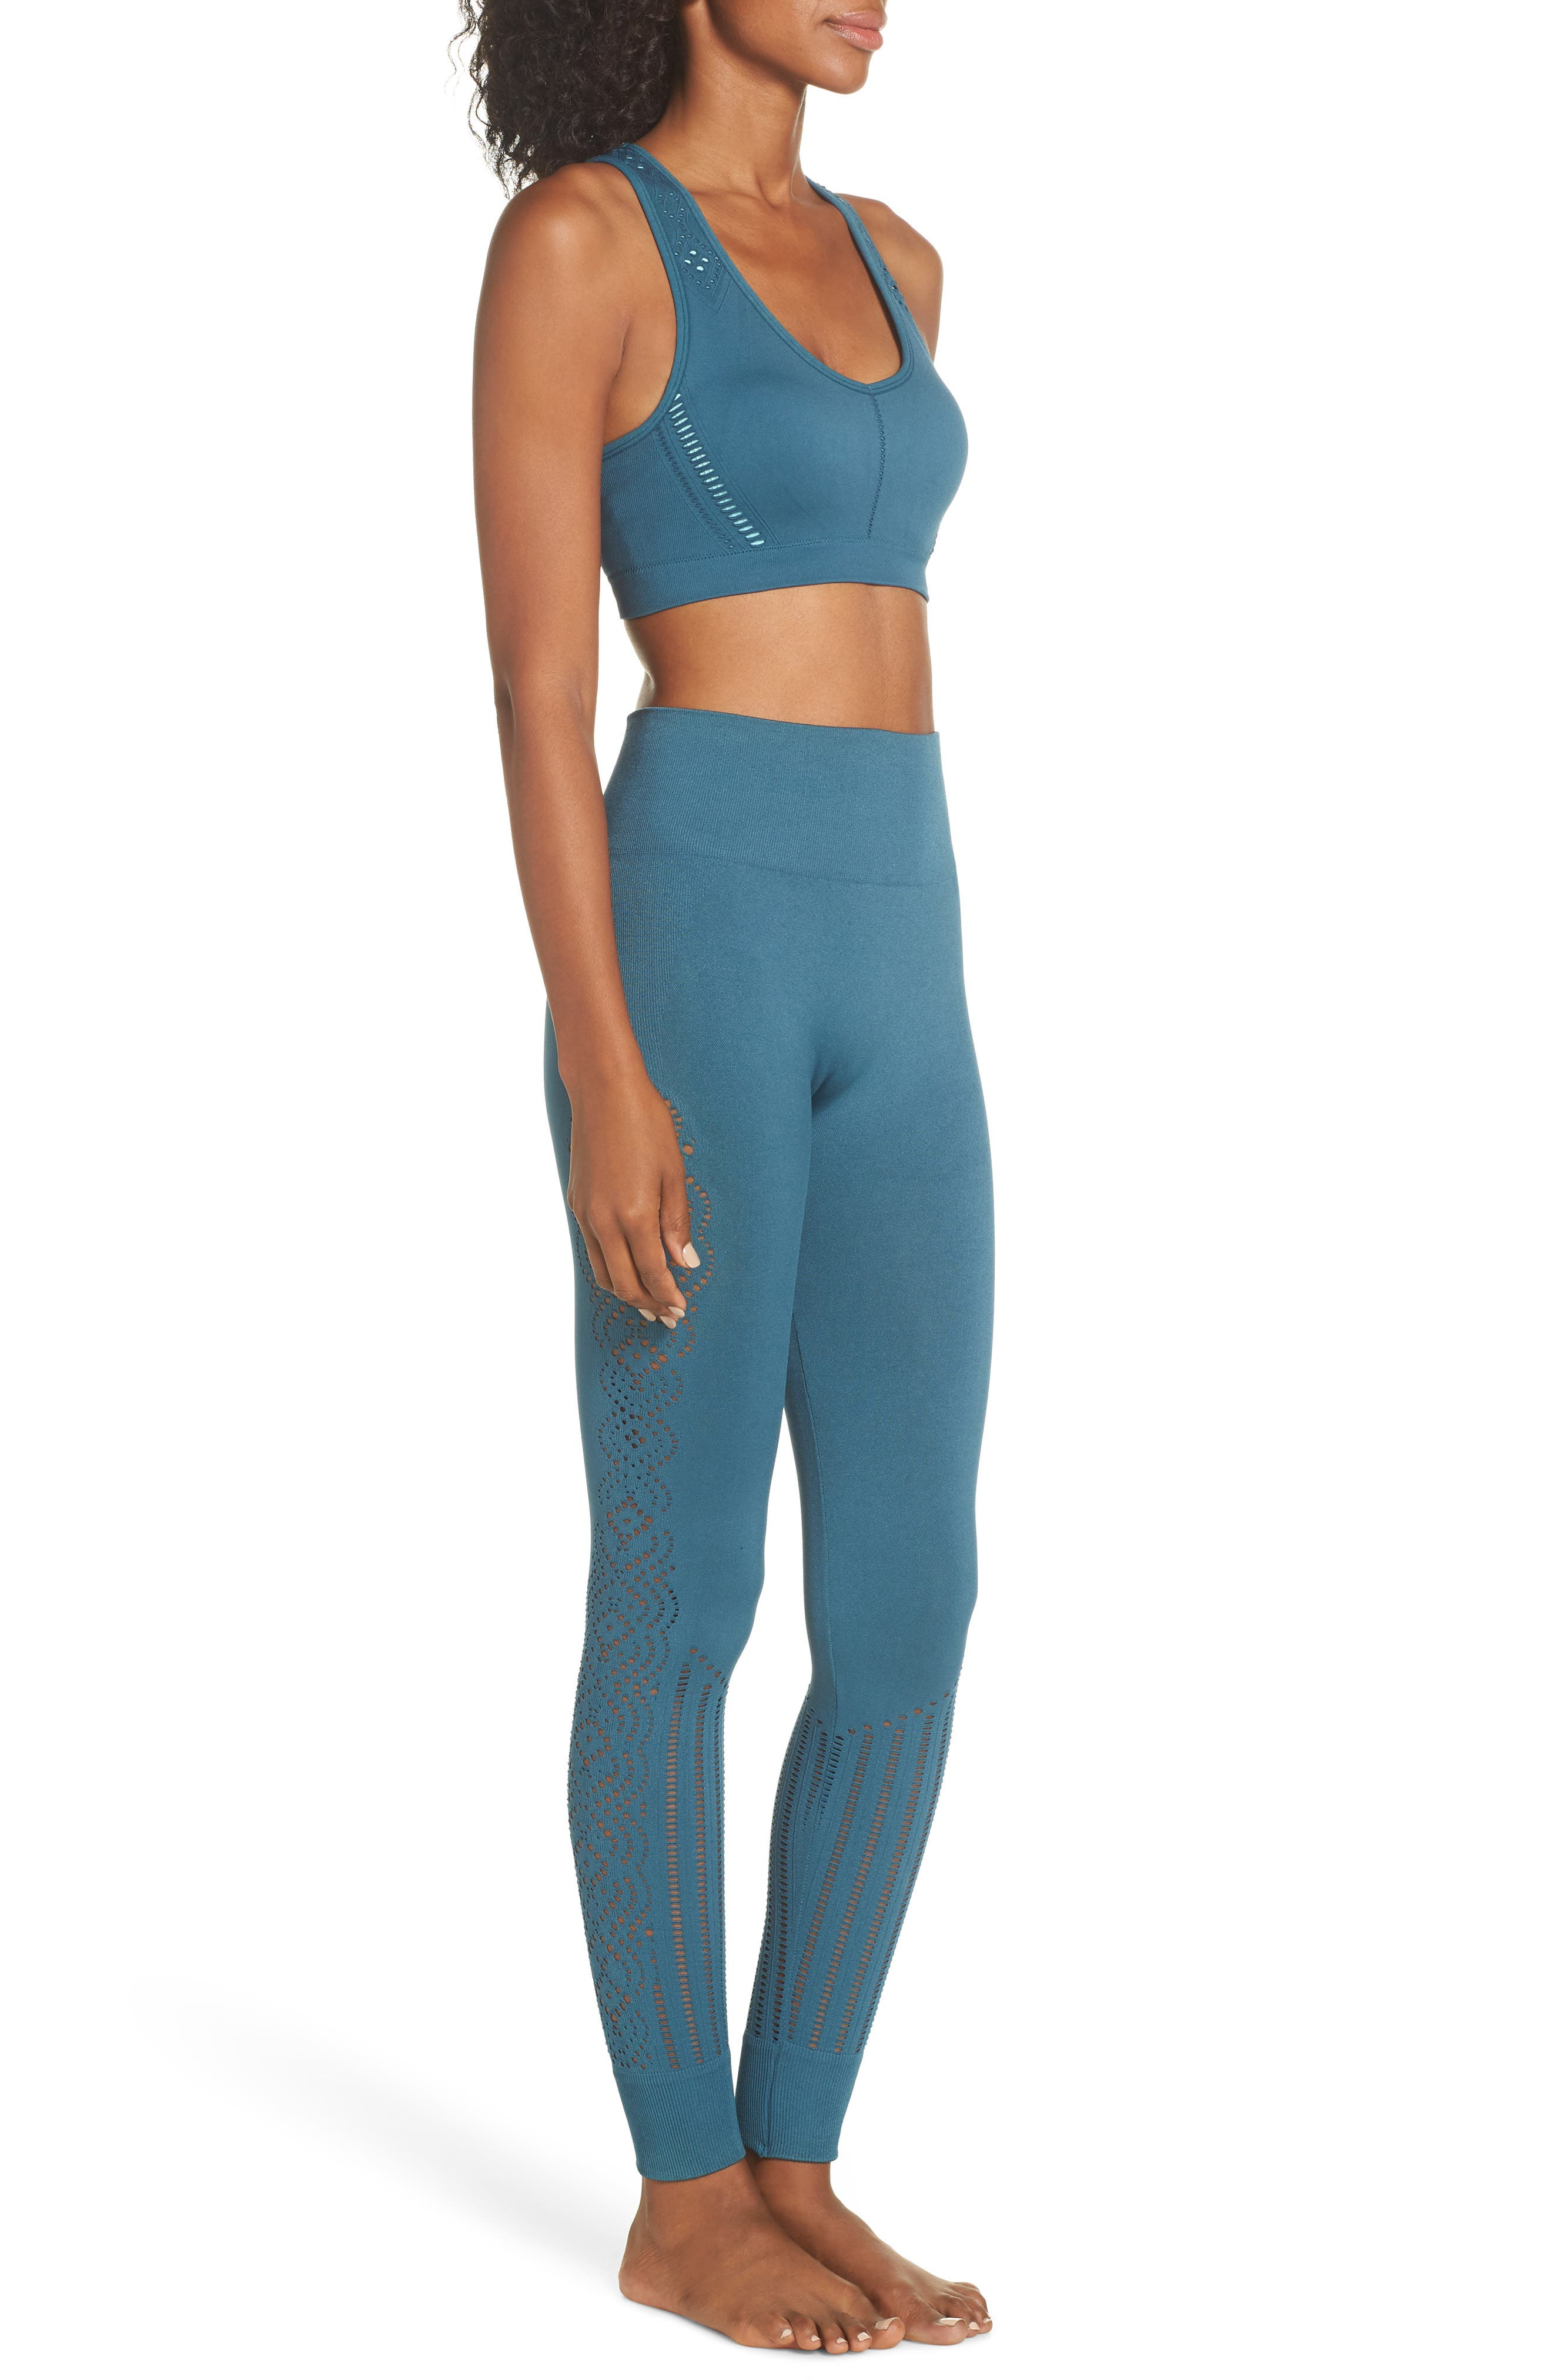 CLIMAWEAR,                             Hansa Sports Bra,                             Alternate thumbnail 9, color,                             NORTH SEA W/ AQUA HAZE